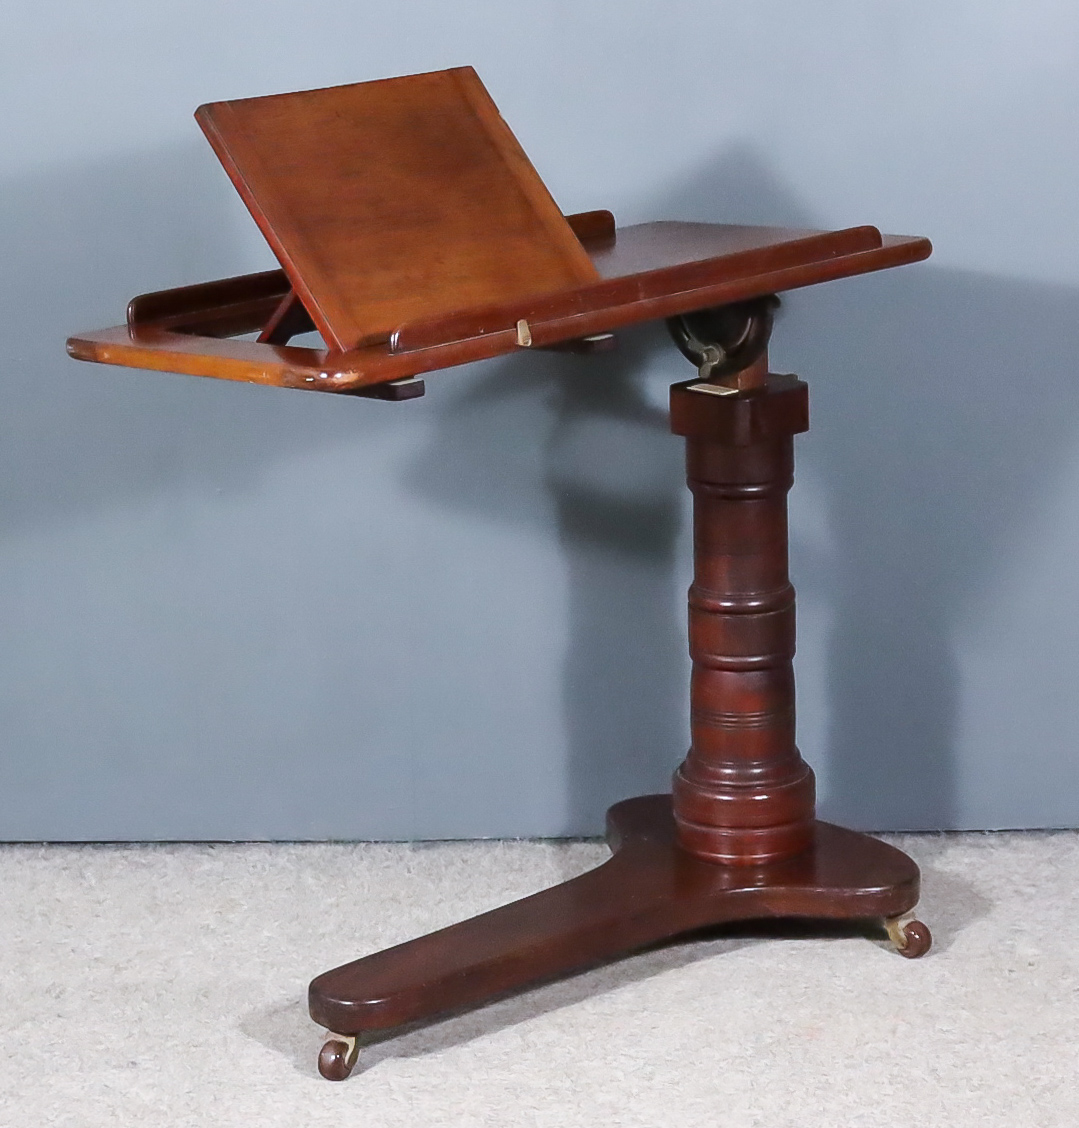 A Late Victorian Mahogany Adjustable Bed Table, by Levenson & Sons, the rectangular tray top with